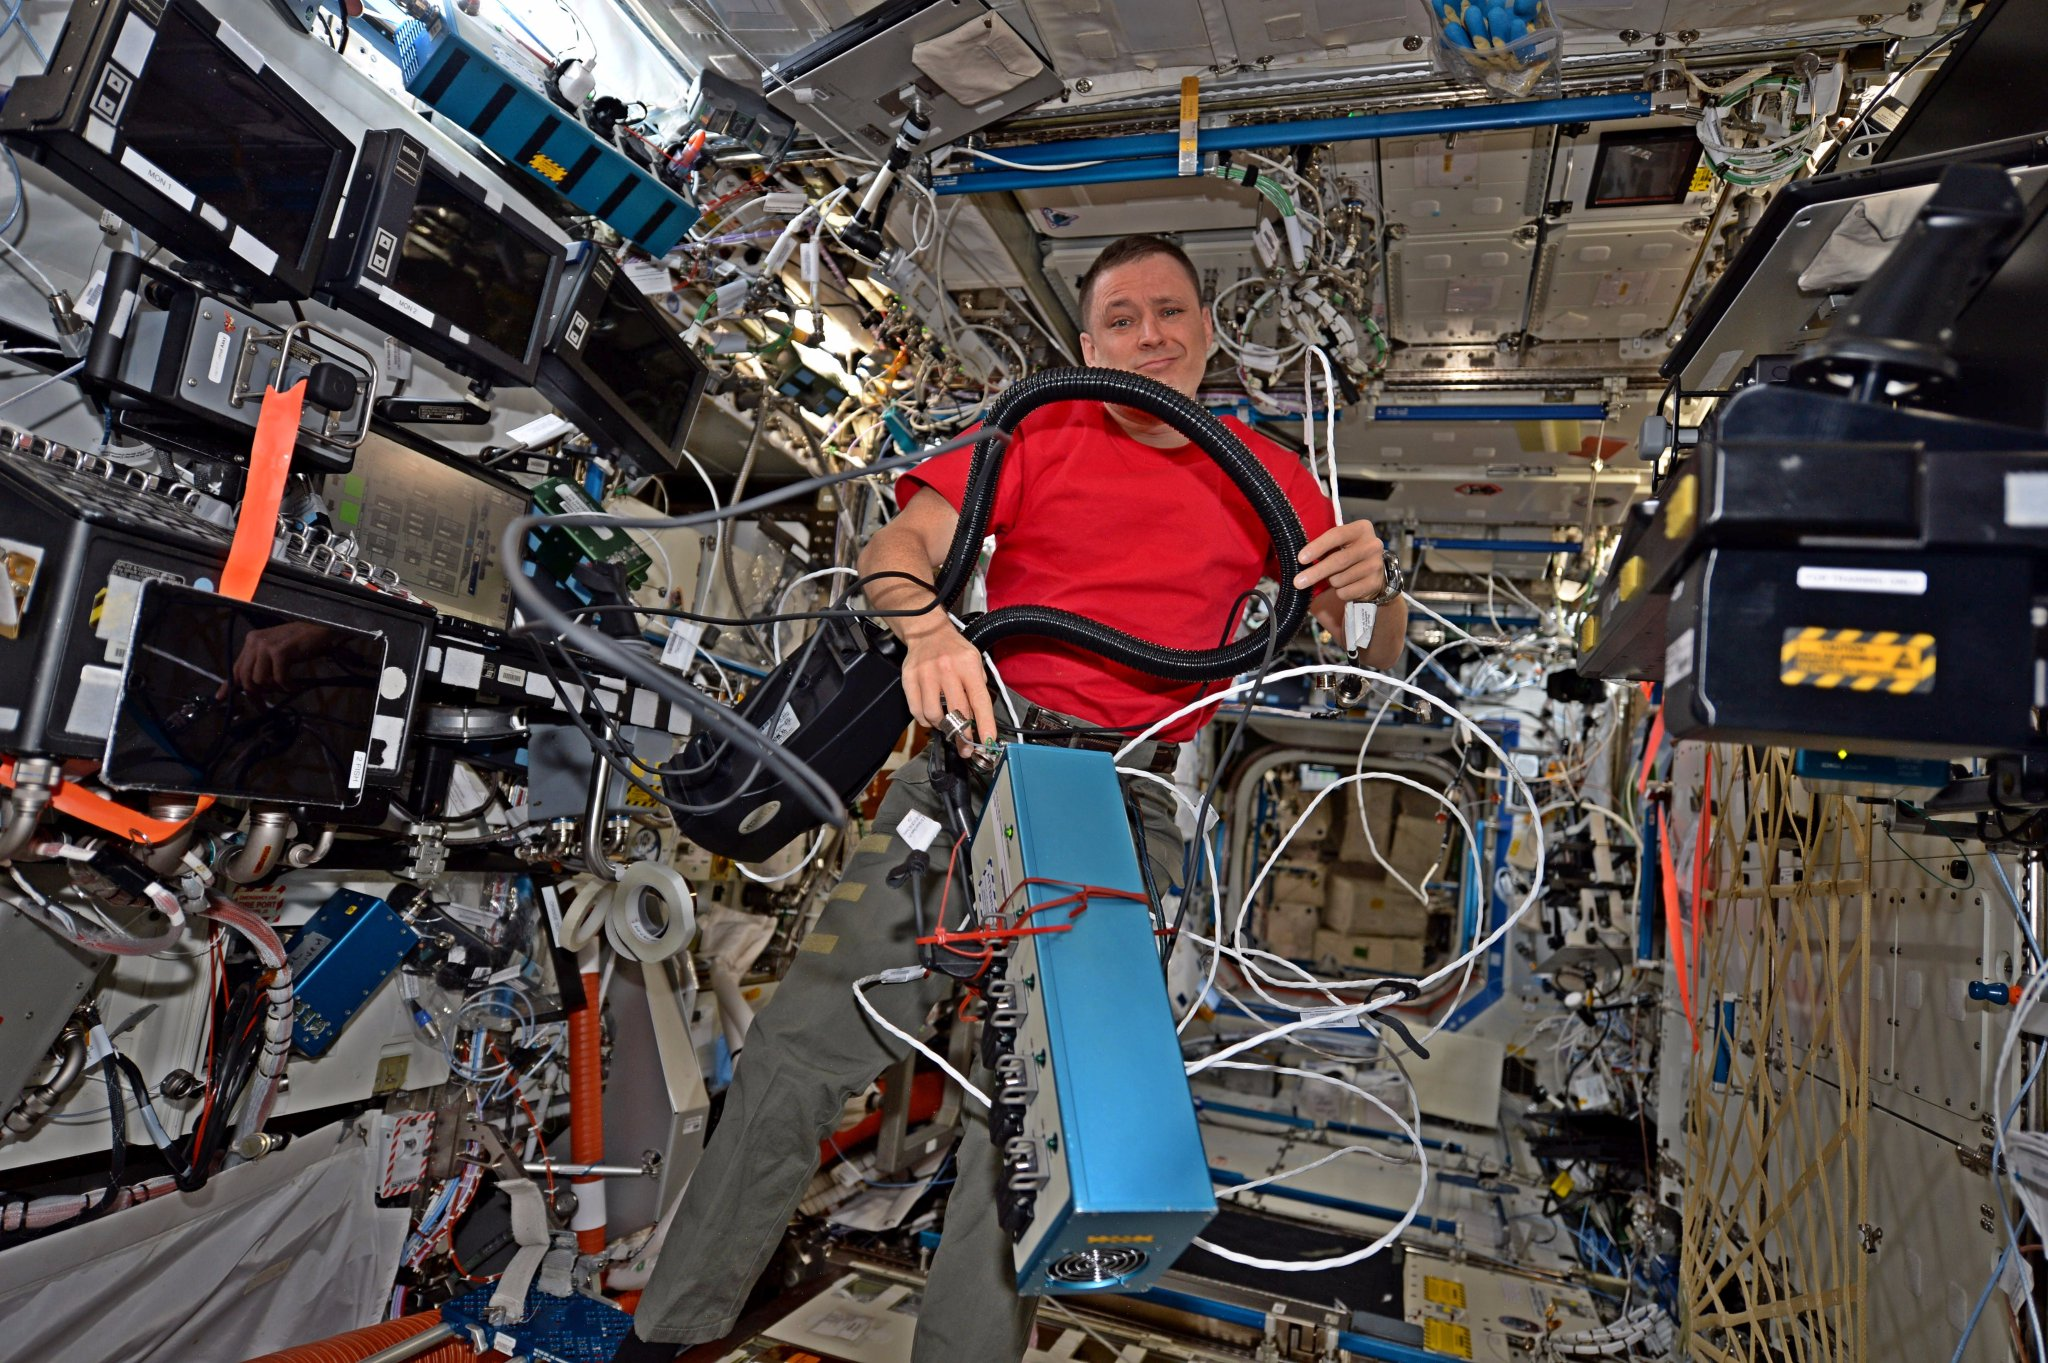 Astronaut Jack Fischer works to untangle cables and cords on the International Space Station. Photo Credit: NASA